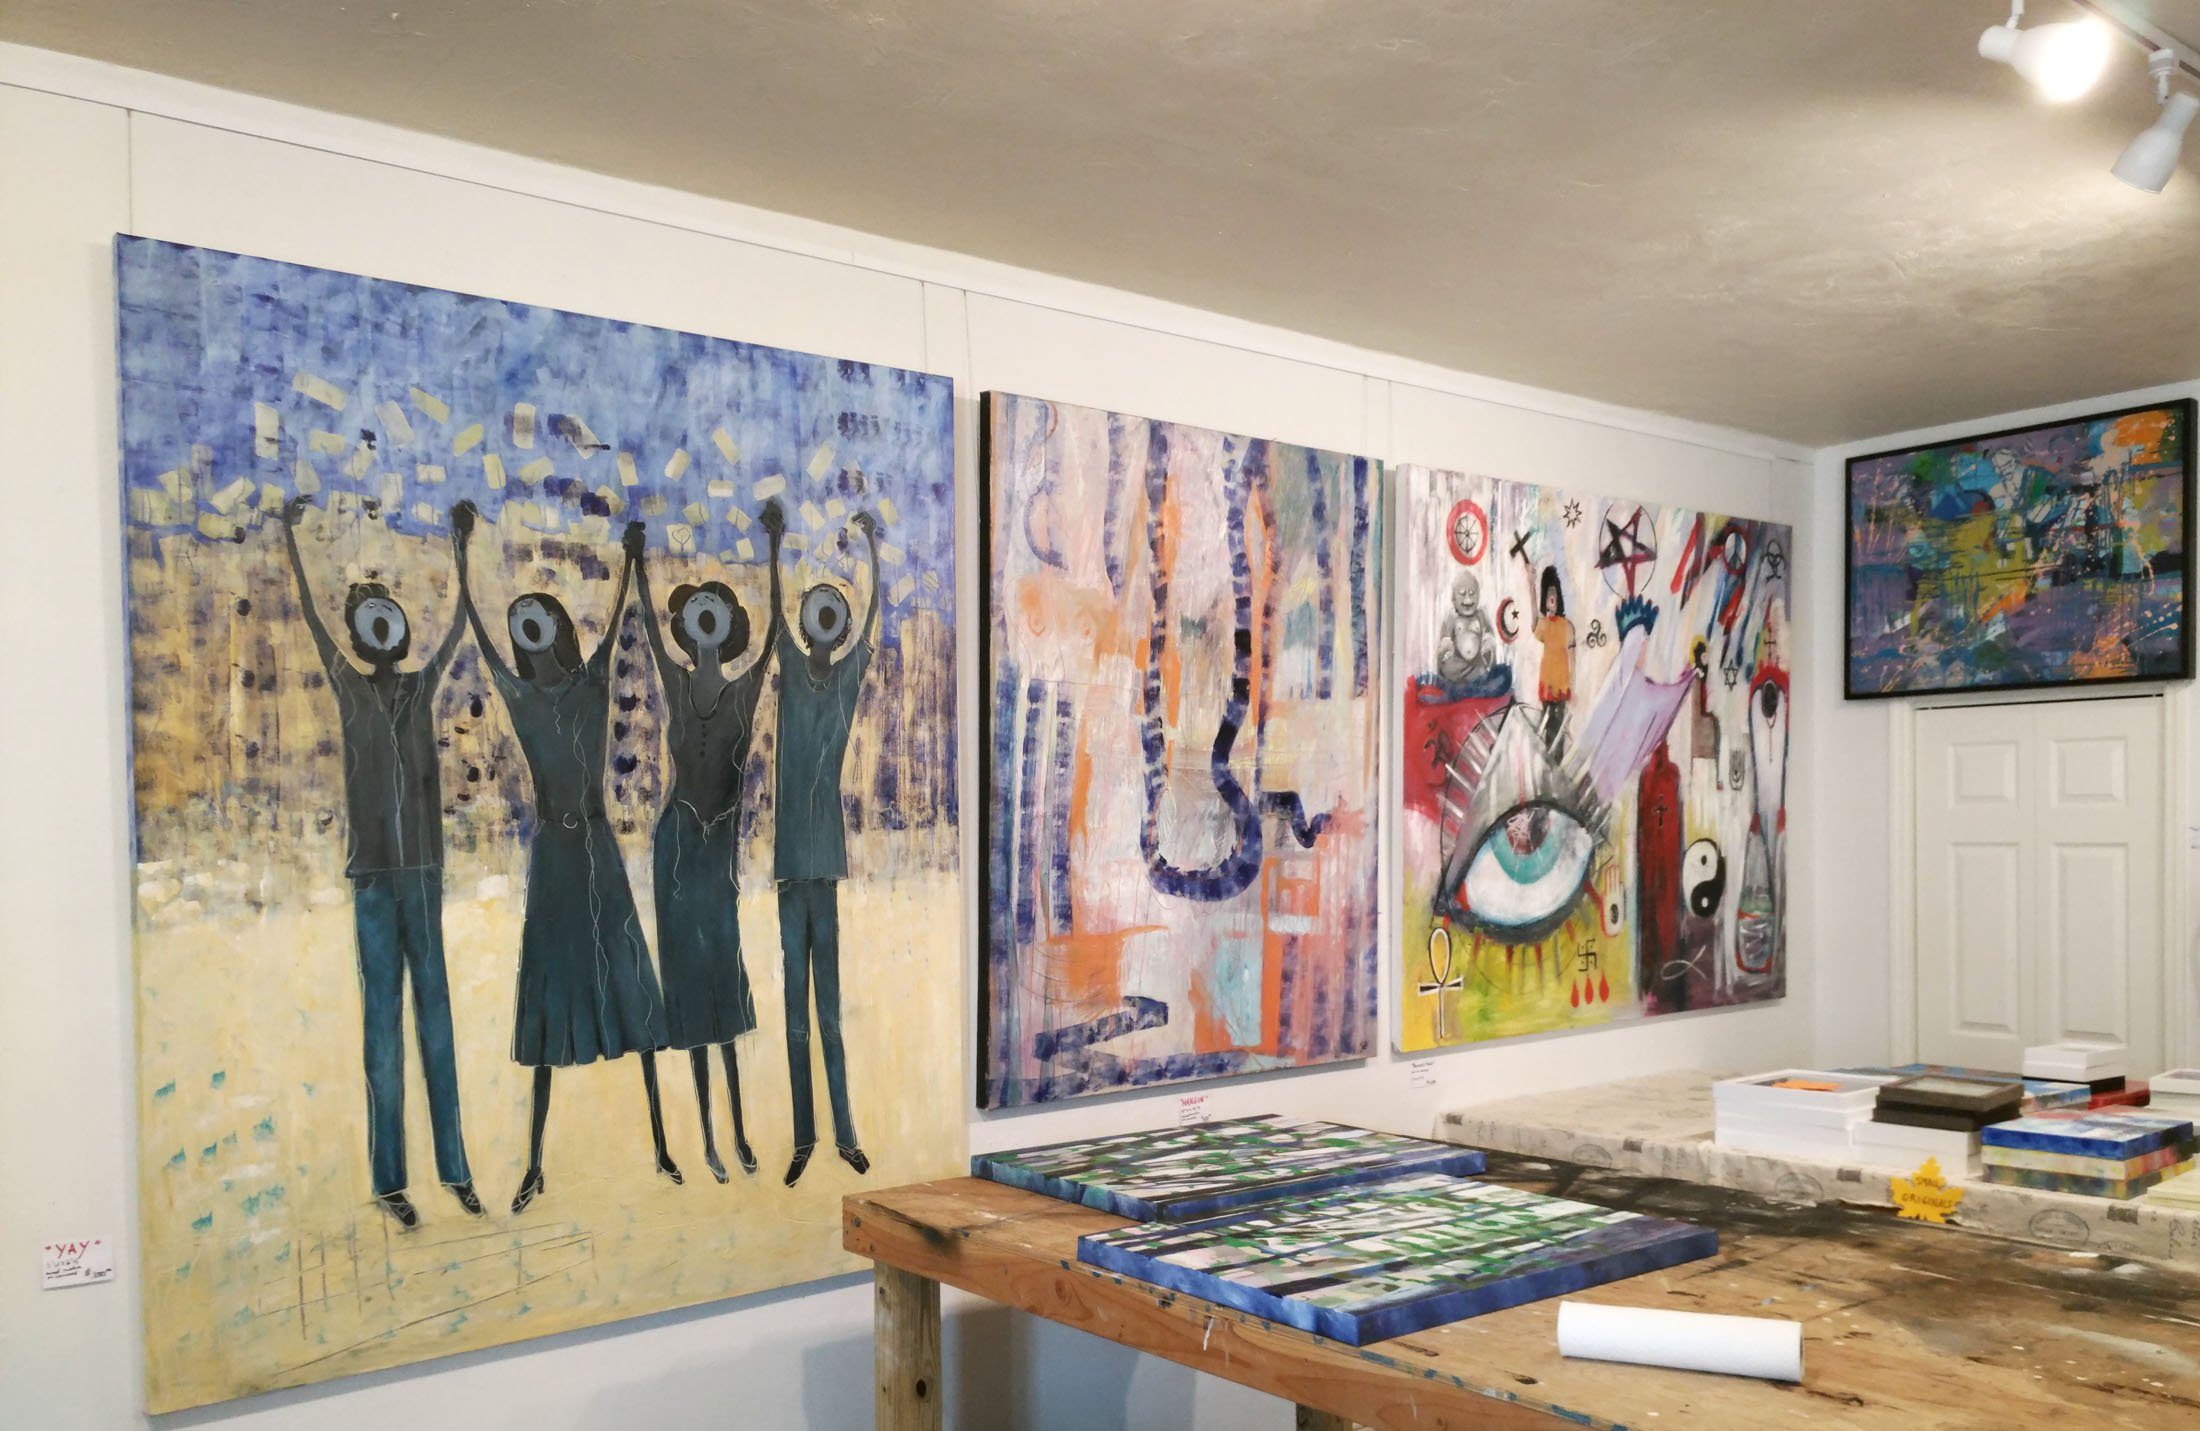 Renee Falsetto's Art Studio combines display space with work space. (Craig Davis/Craigslegztravels.com)